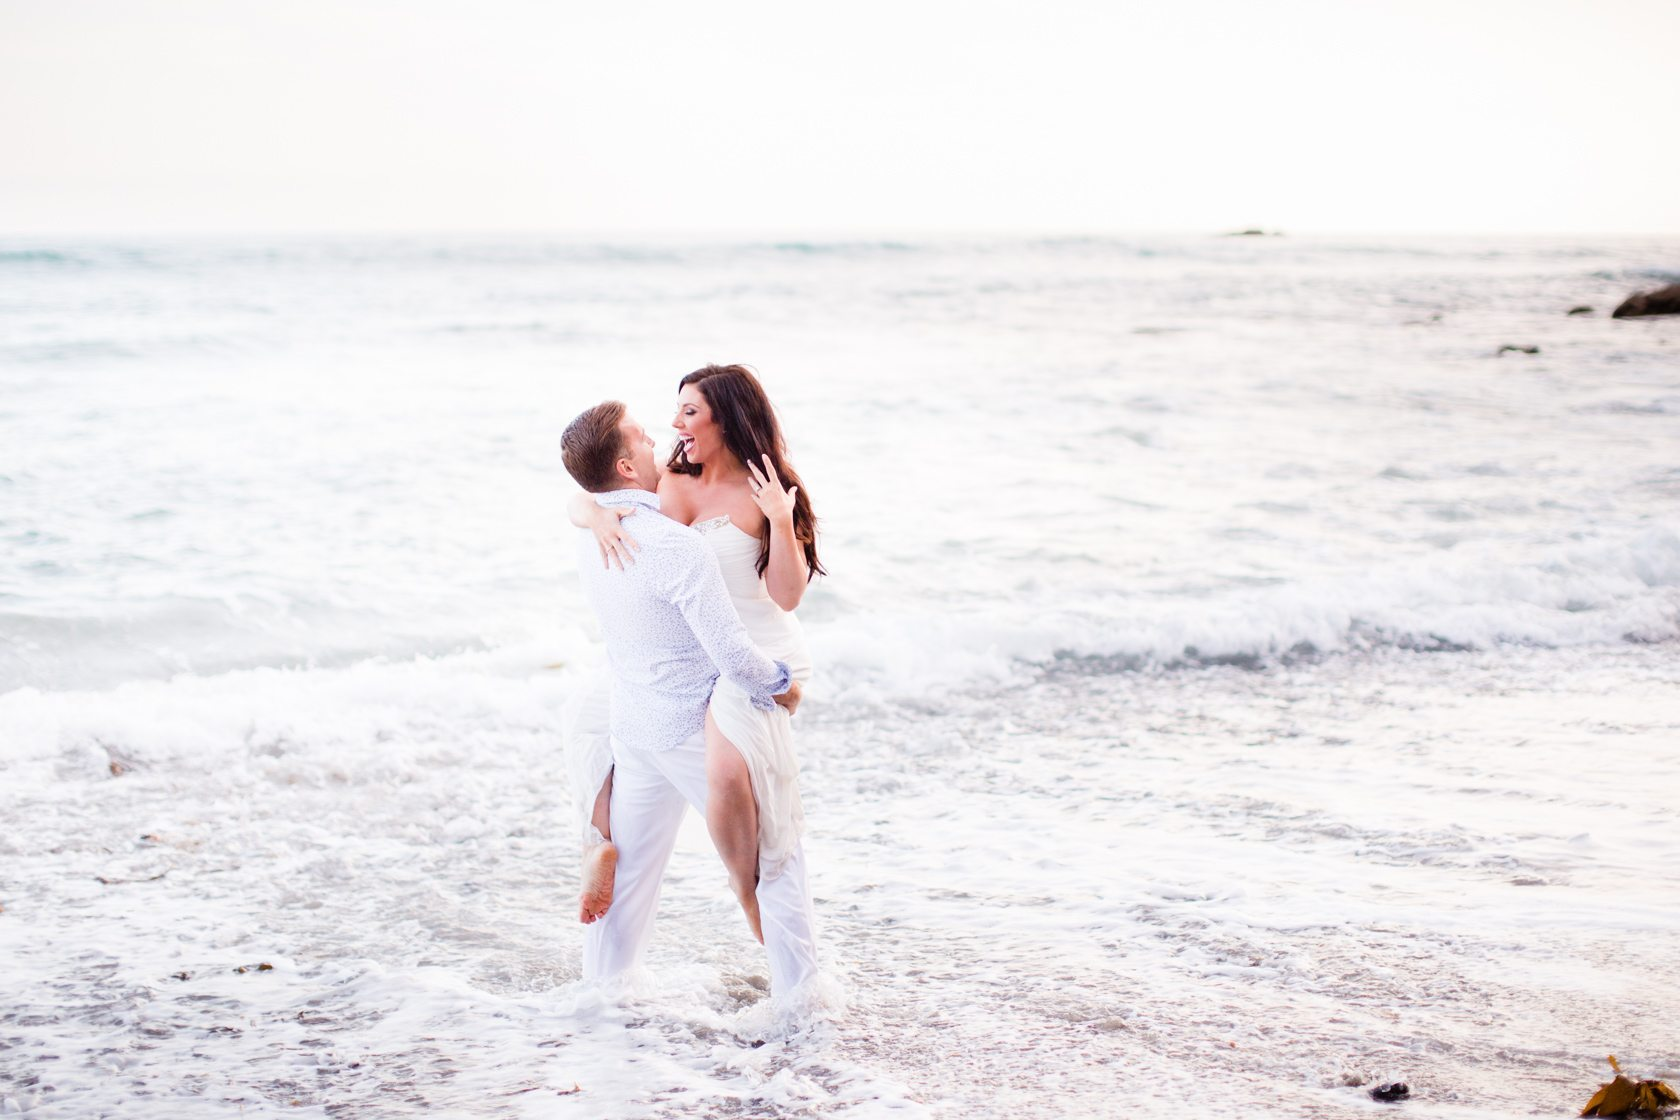 Mission_San_Juan_Capistrano_Engagement_Session_27.jpg